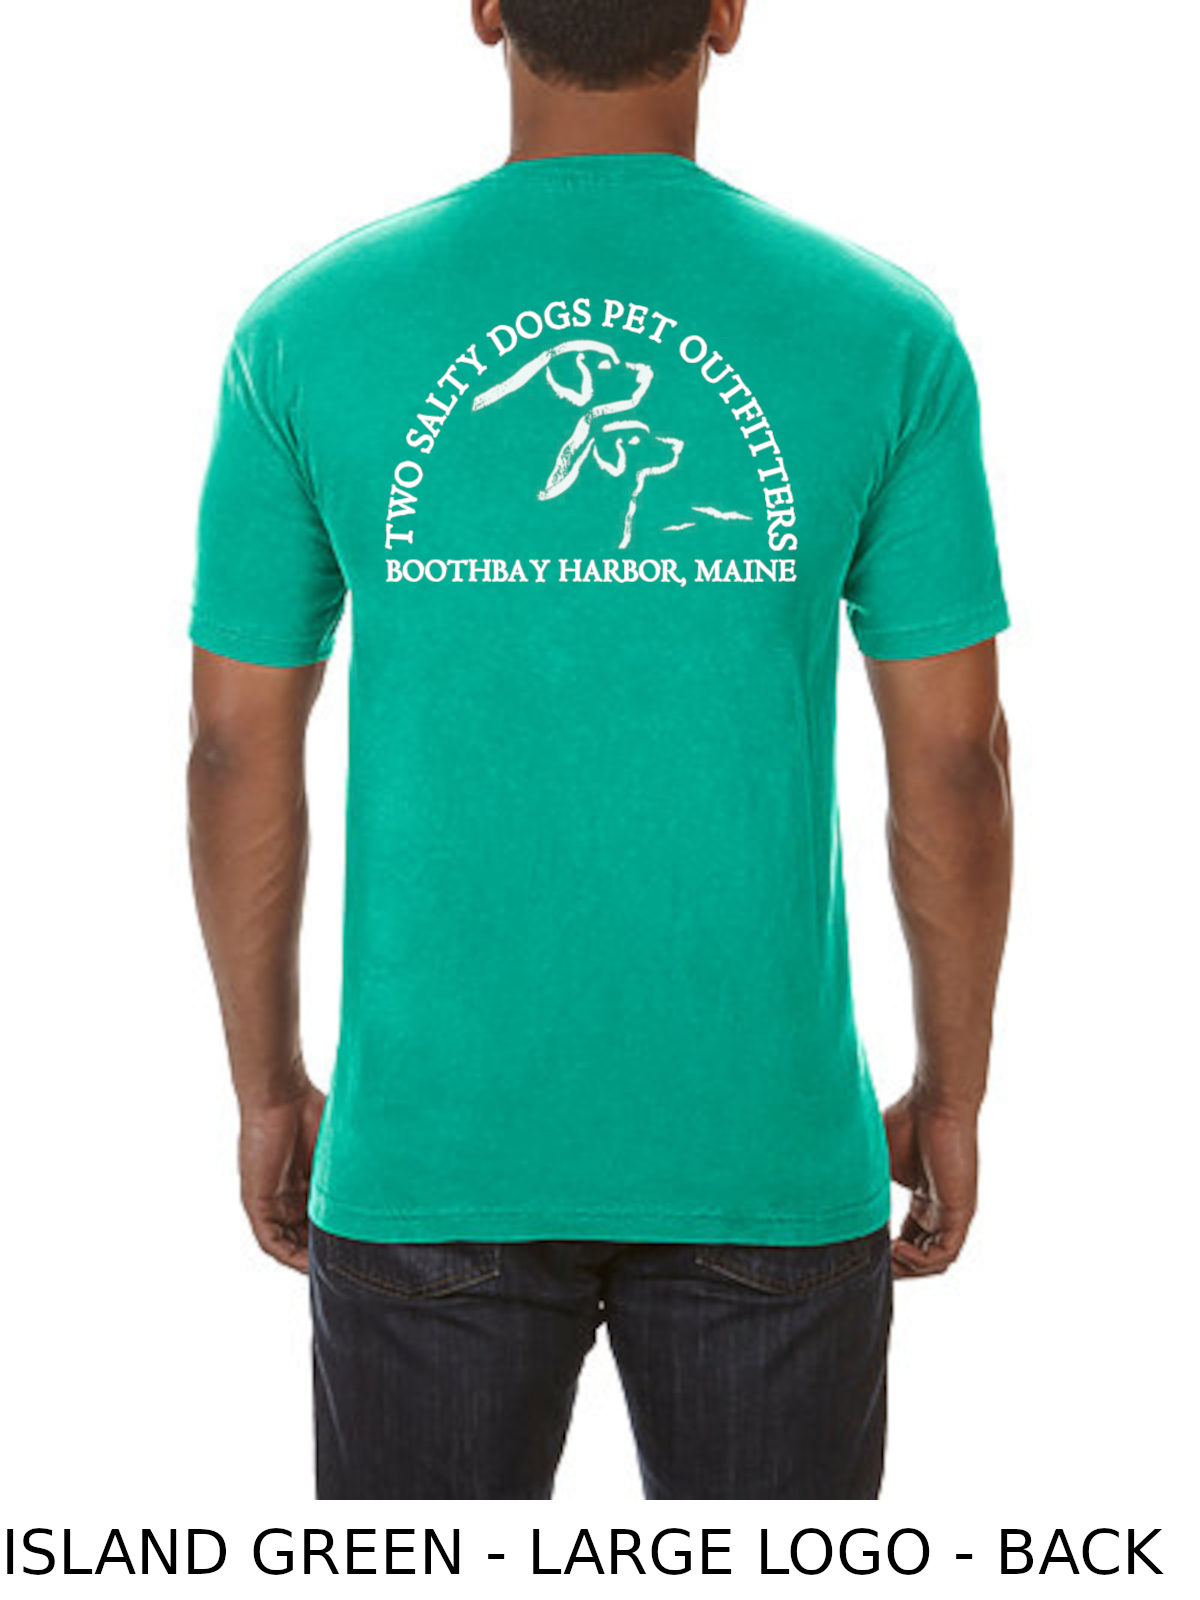 bbha-ss-t-shirt-no-pocket-island-green-back